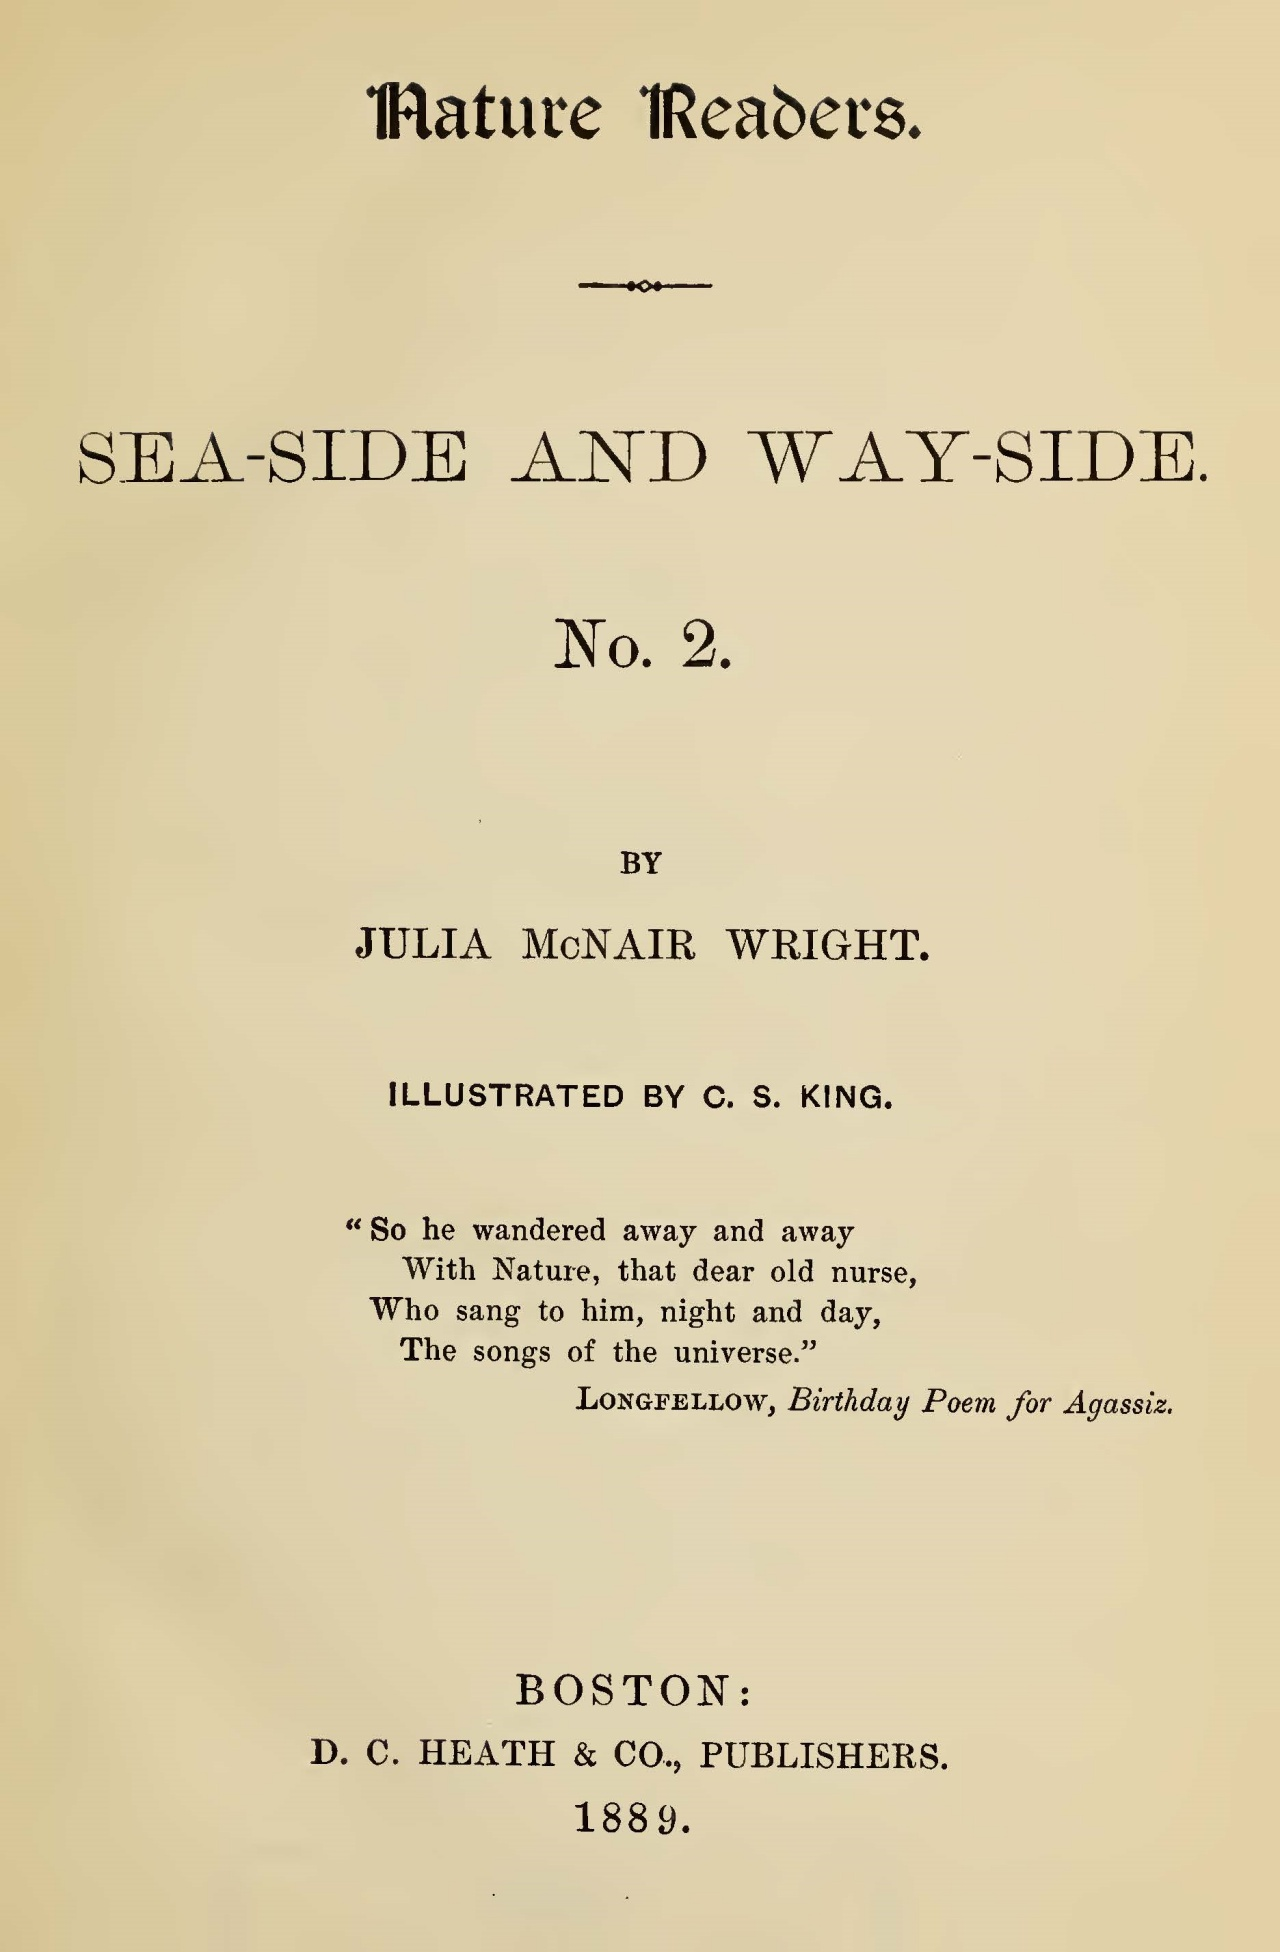 Wright, Julia McNair, Sea-Side and Way-Side No. 2 Title Page.jpg